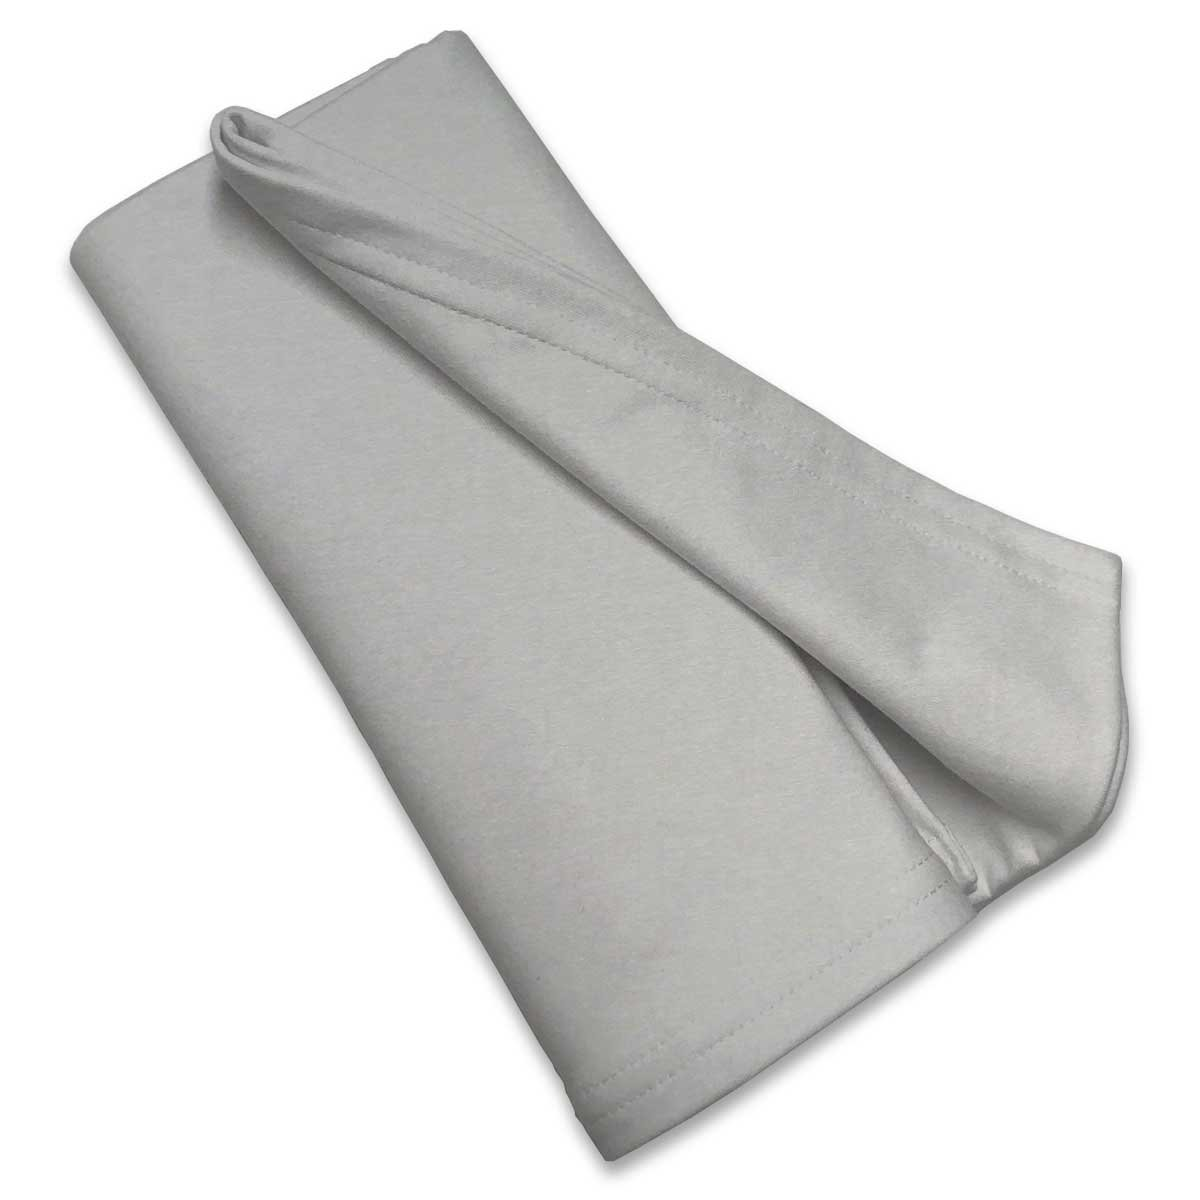 SheetWorld Soft & Stretchy Swaddle Blanket - Silver Grey - Made In USA